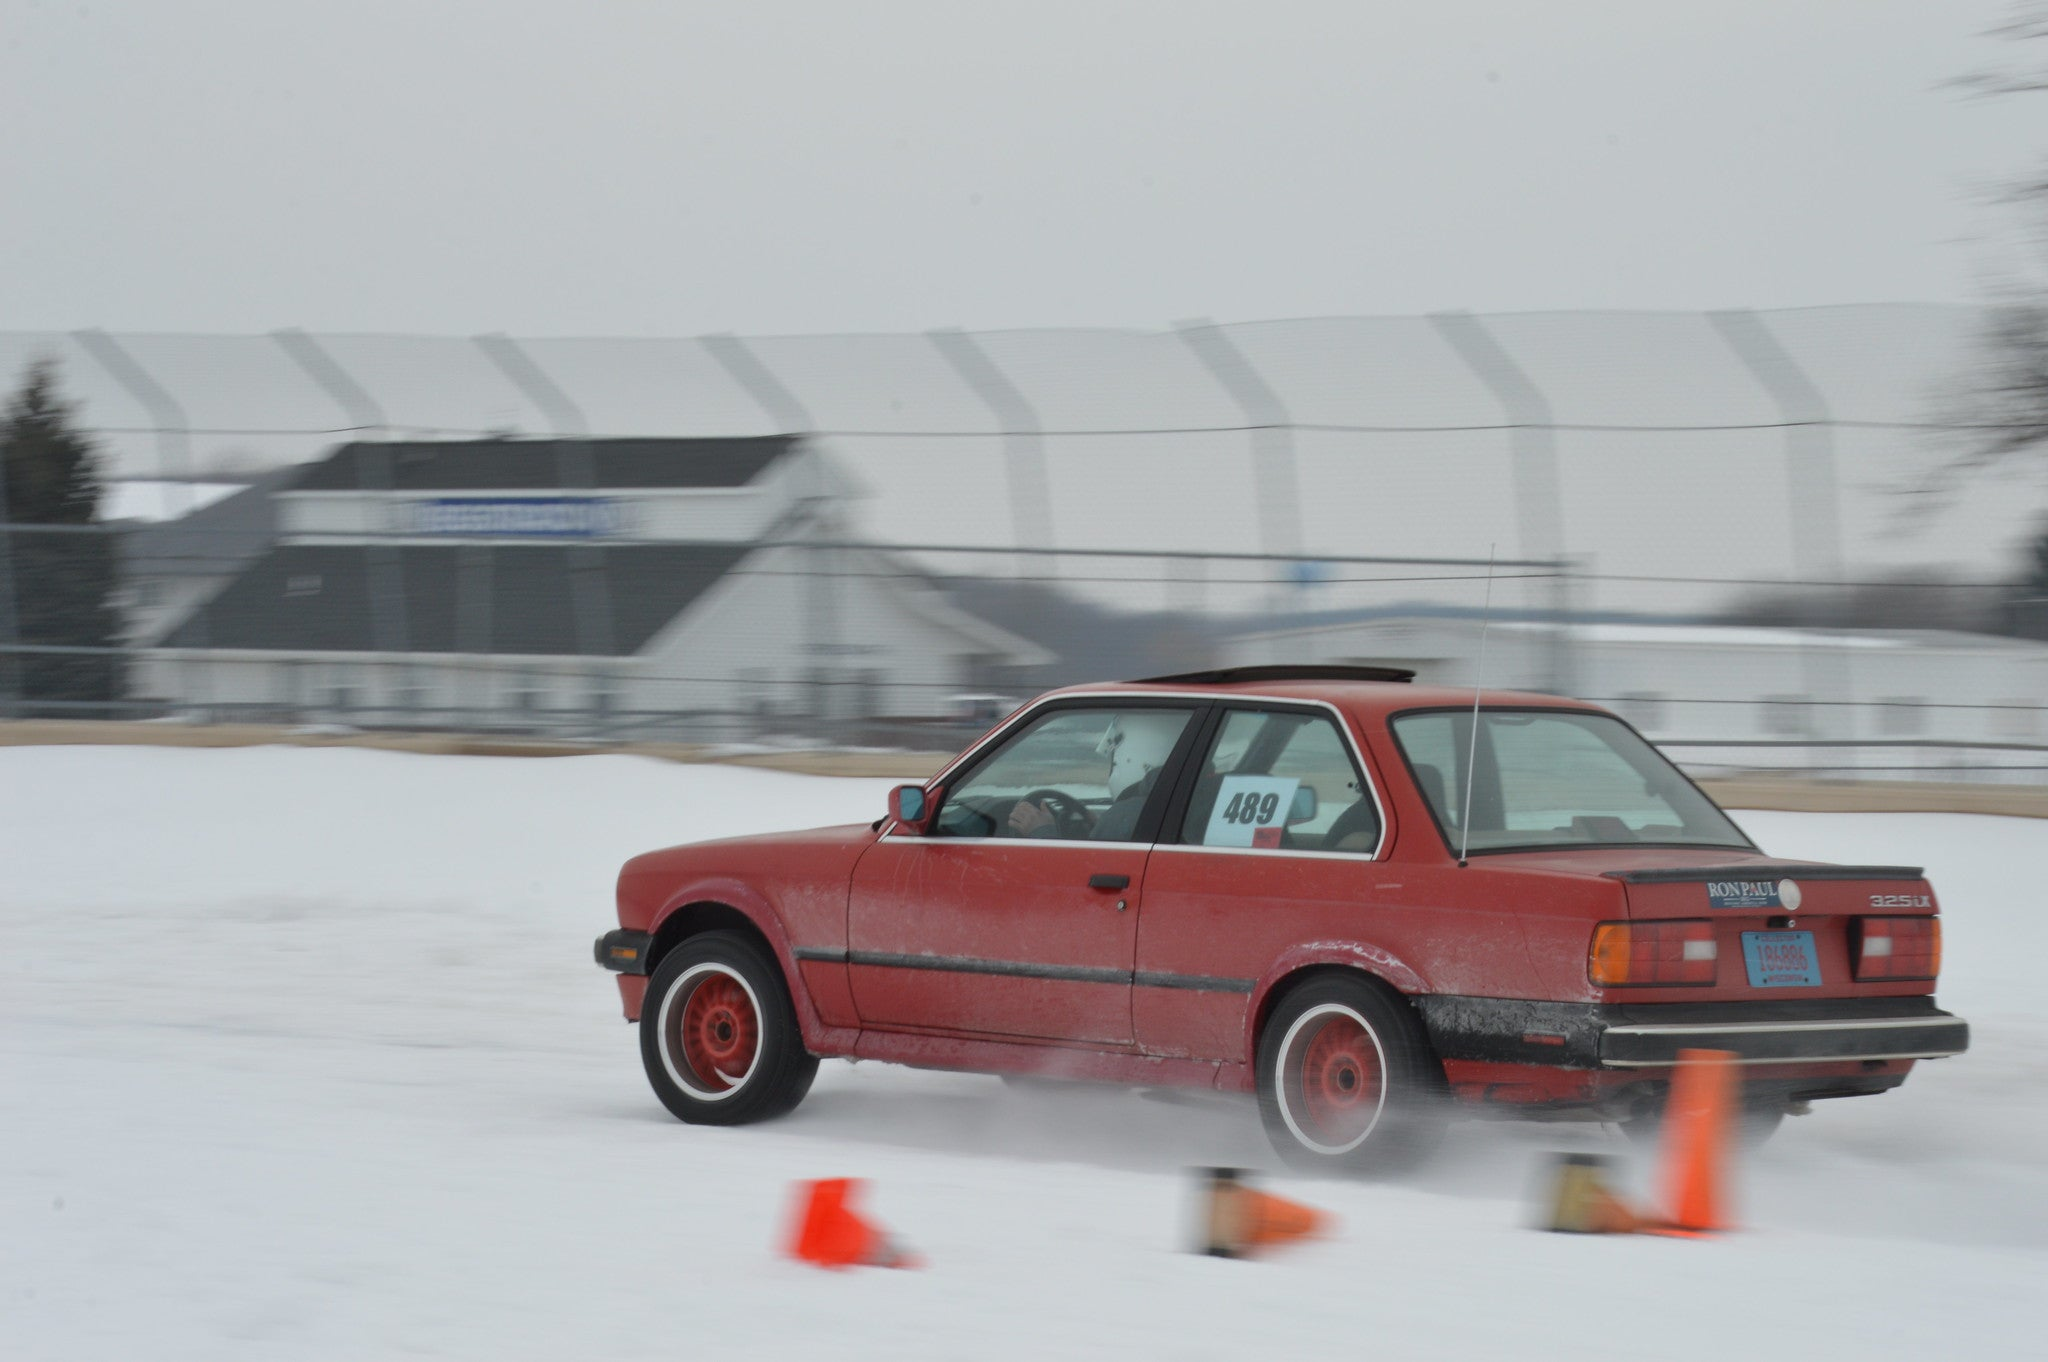 1988 BMW 325ix competing in a winter autocross